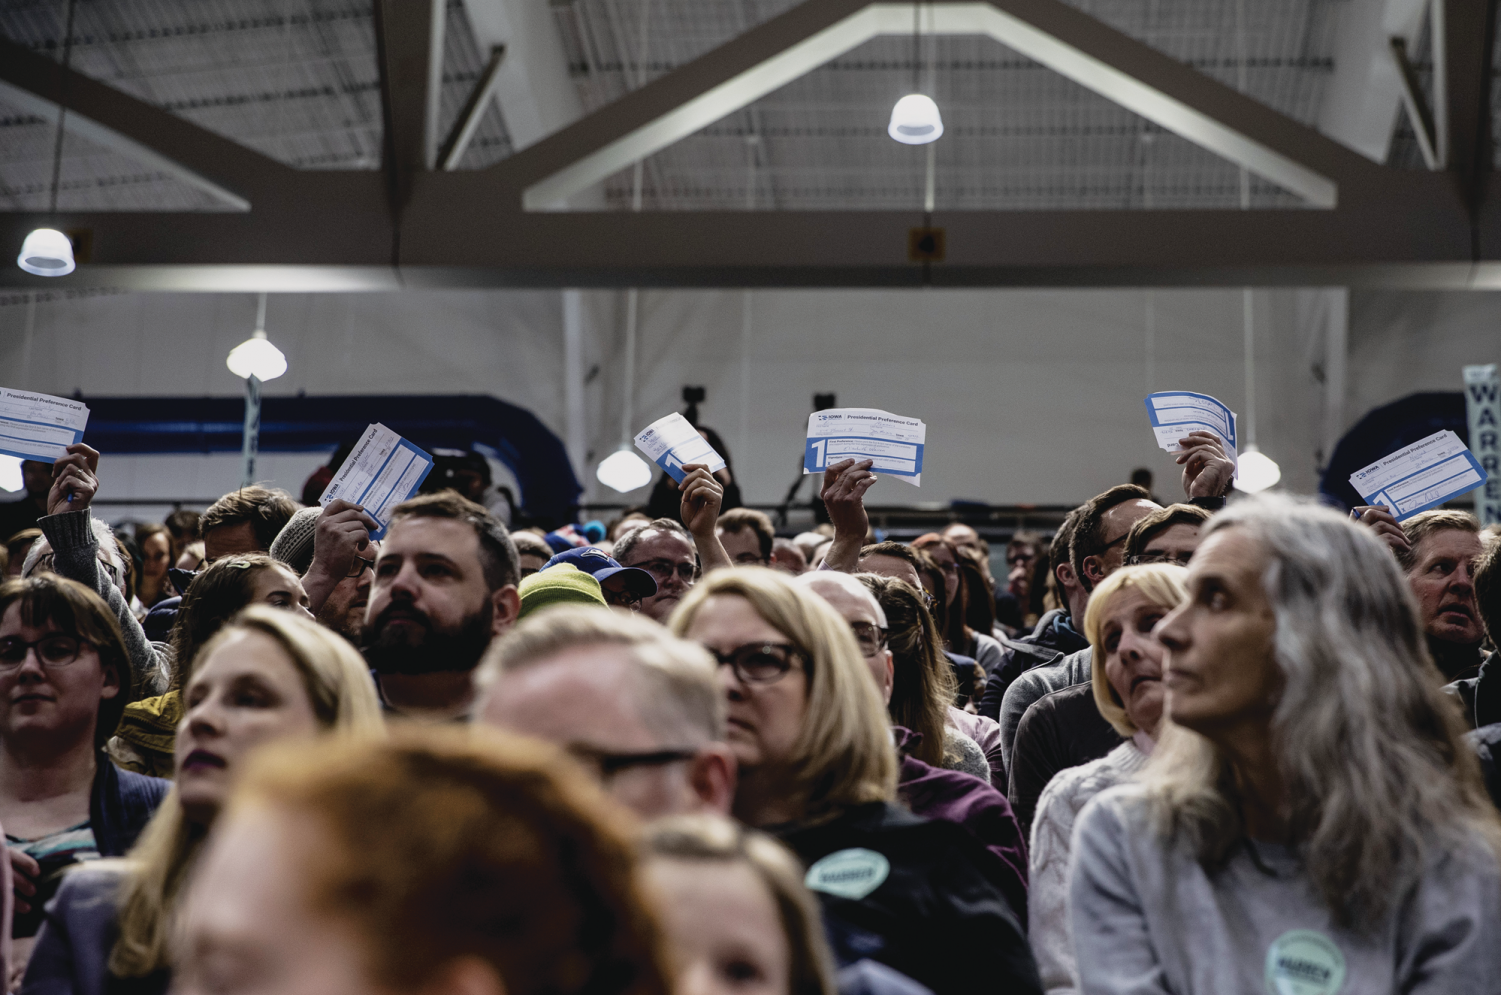 Supporters of Sen. Elizabeth Warren, D-Mass., hold up cards during the caucus at Des Moines Precinct 62 in the Knapp Center on Monday, February 3, 2020. The caucus head count reached 849 people, leaving 127 individuals needed for the candidate to be declared viable. Sen. Warren received 212 1st round total head count votes.